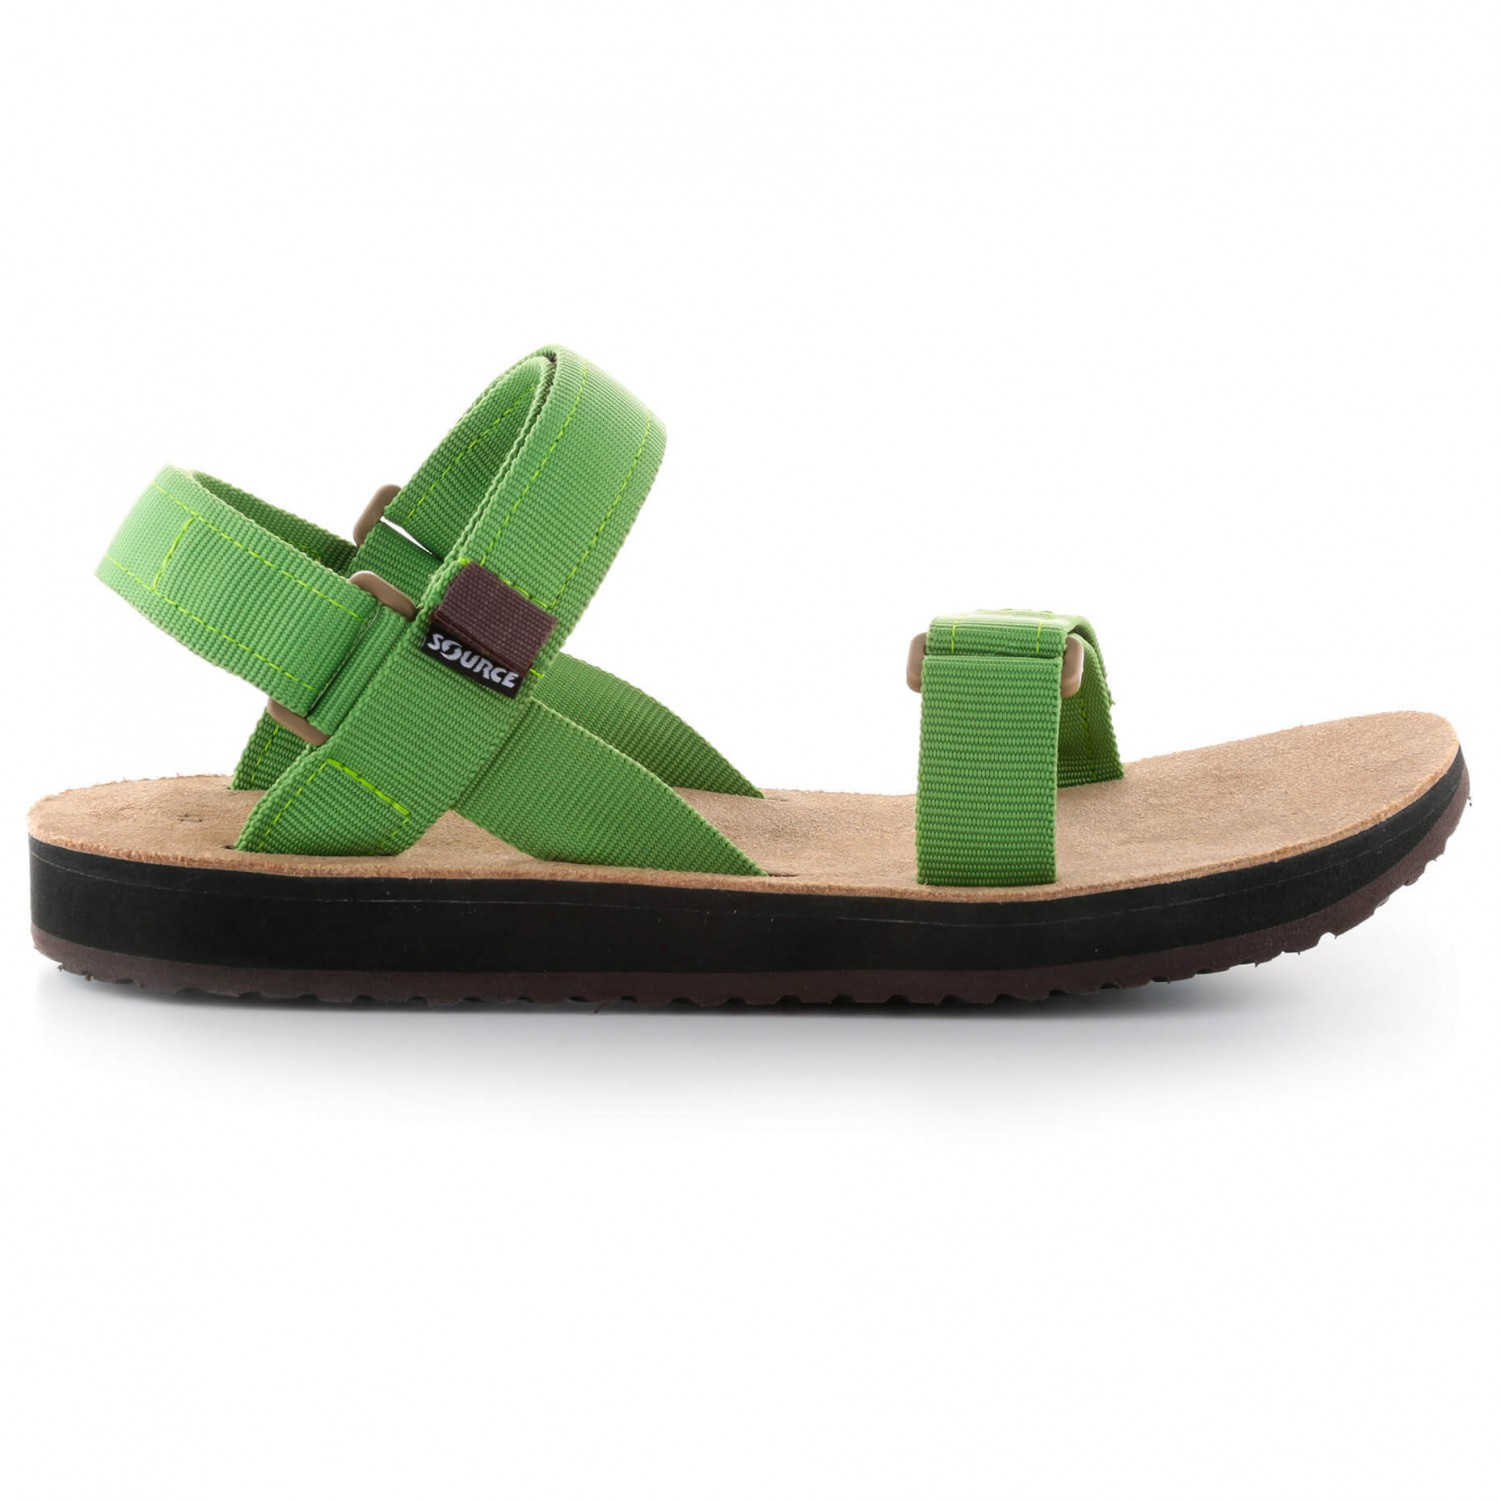 096376929ad3 ... Source - Leather Urban - Sandals ...